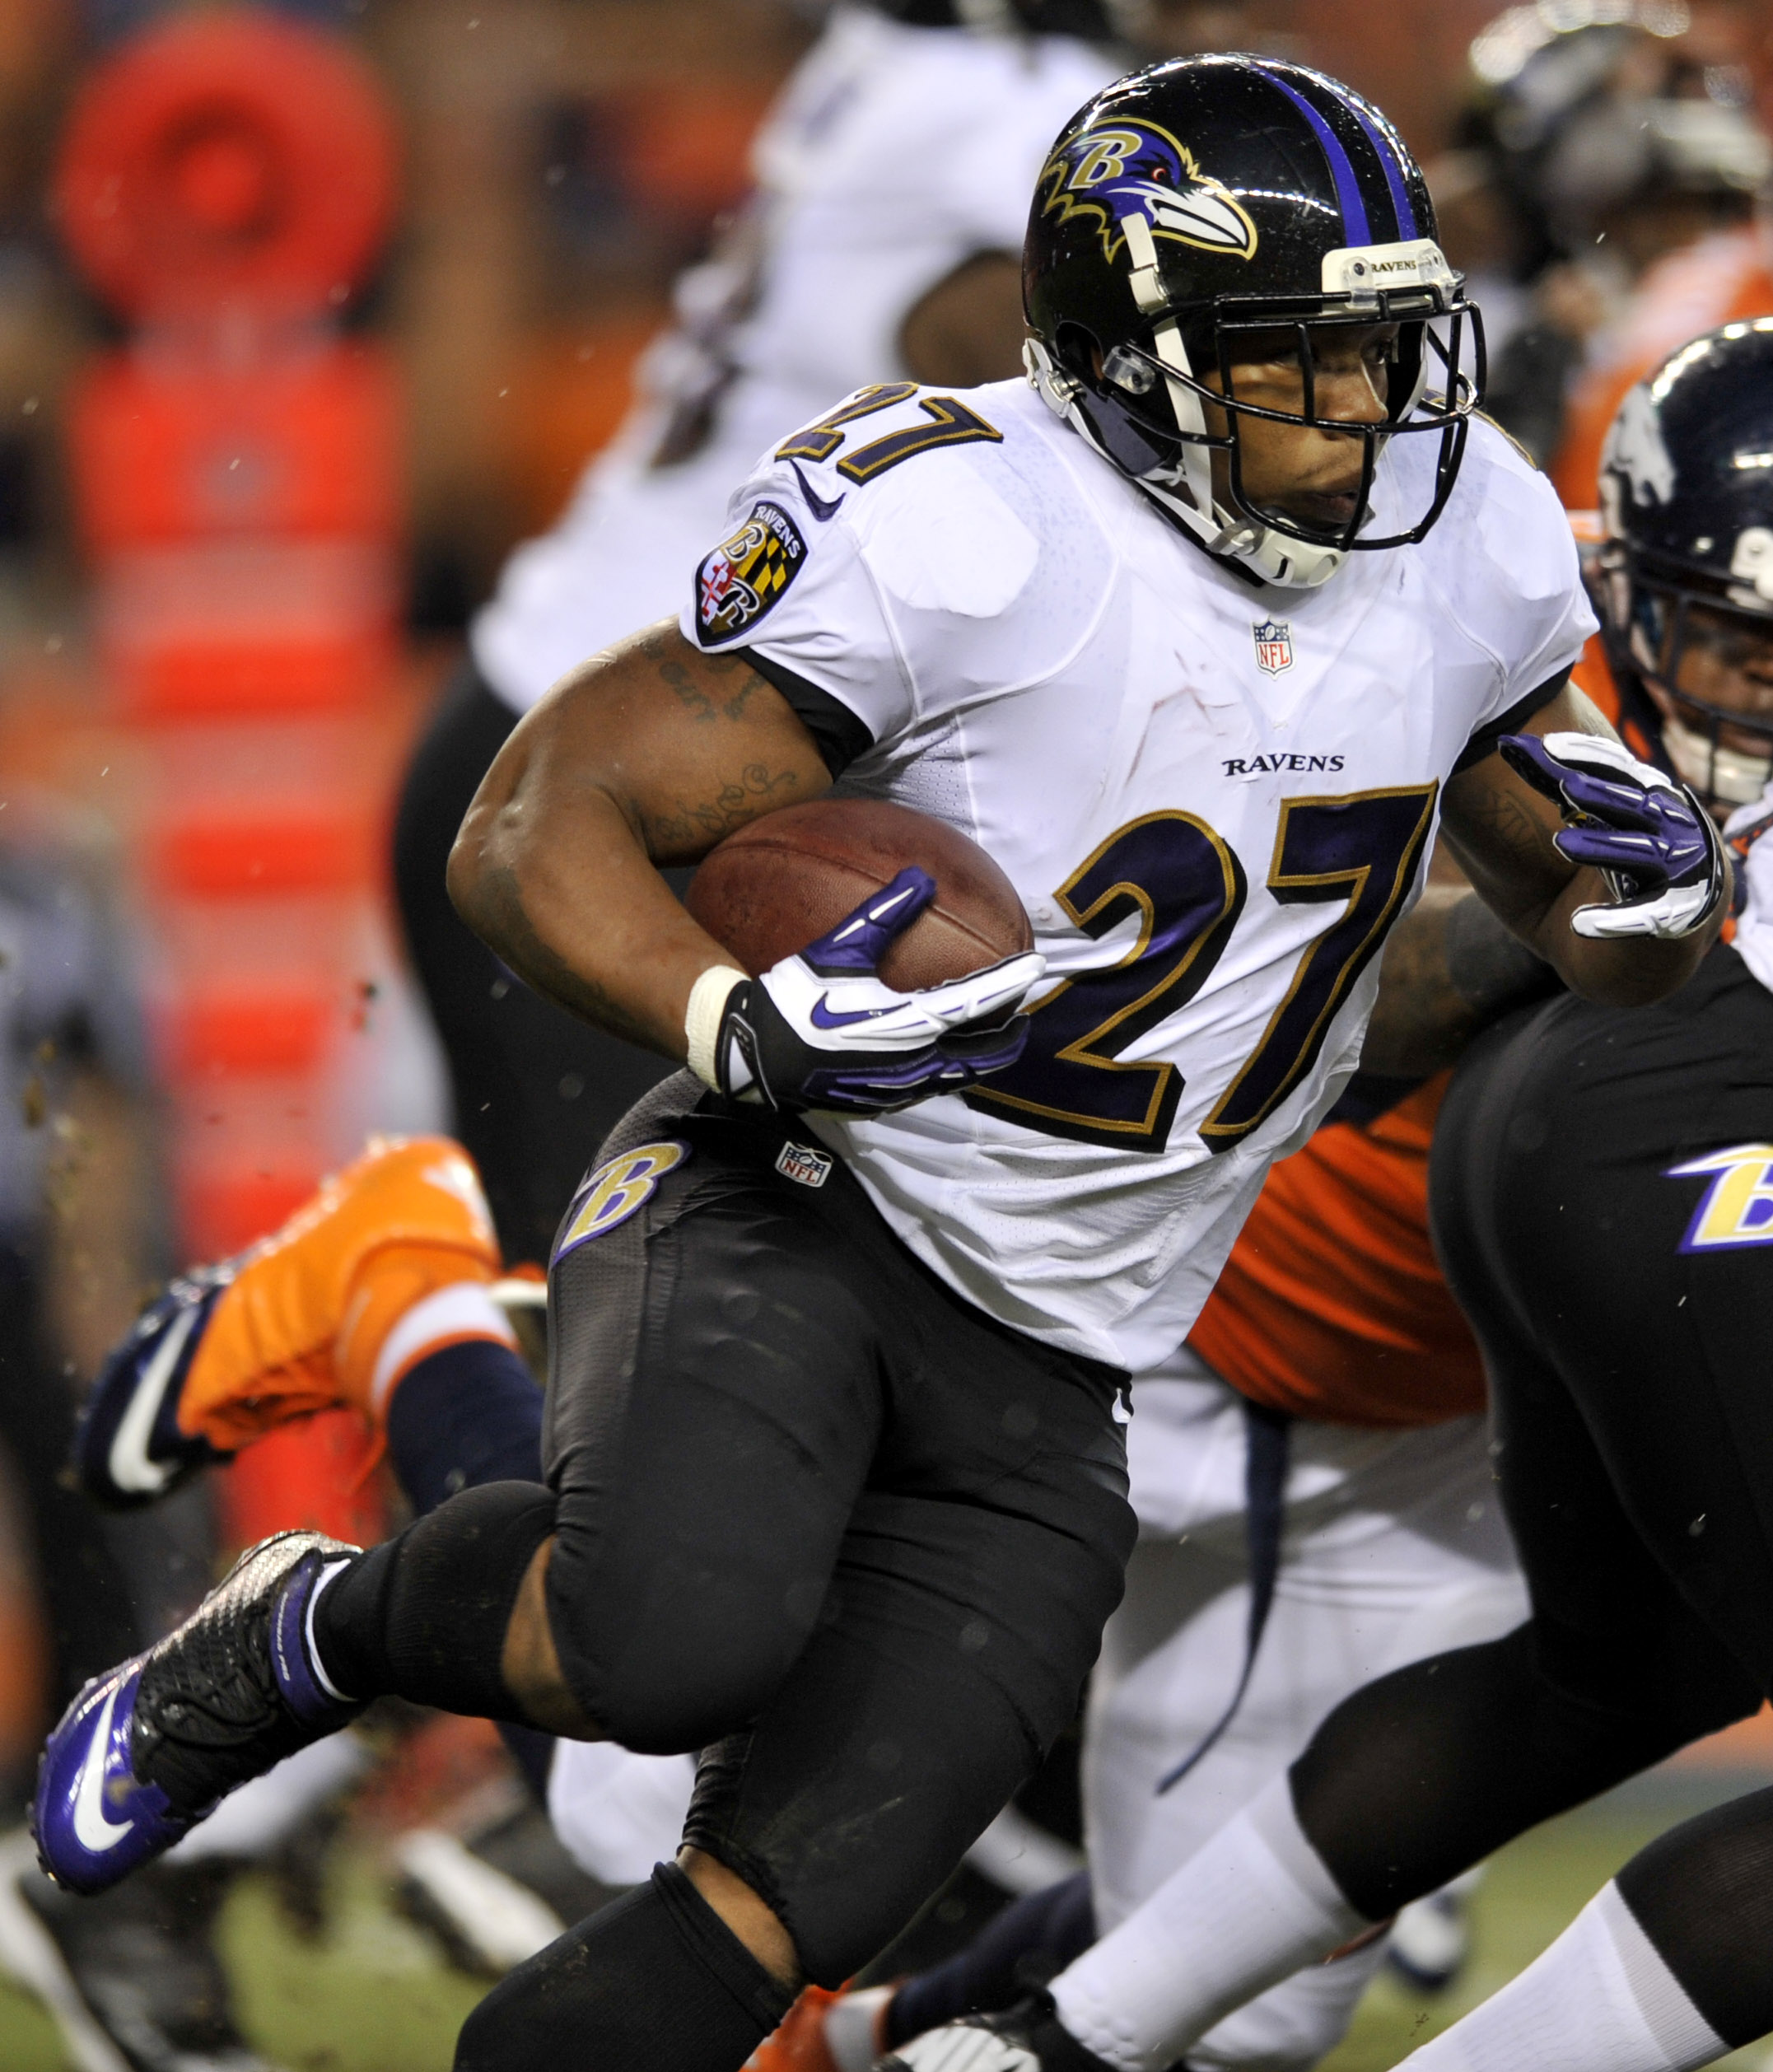 Baltimore Ravens running back Ray Rice (27) runs the ball against the Denver Broncos during the first half of an NFL football game, Thursday, Sept. 5, 2013, in Denver